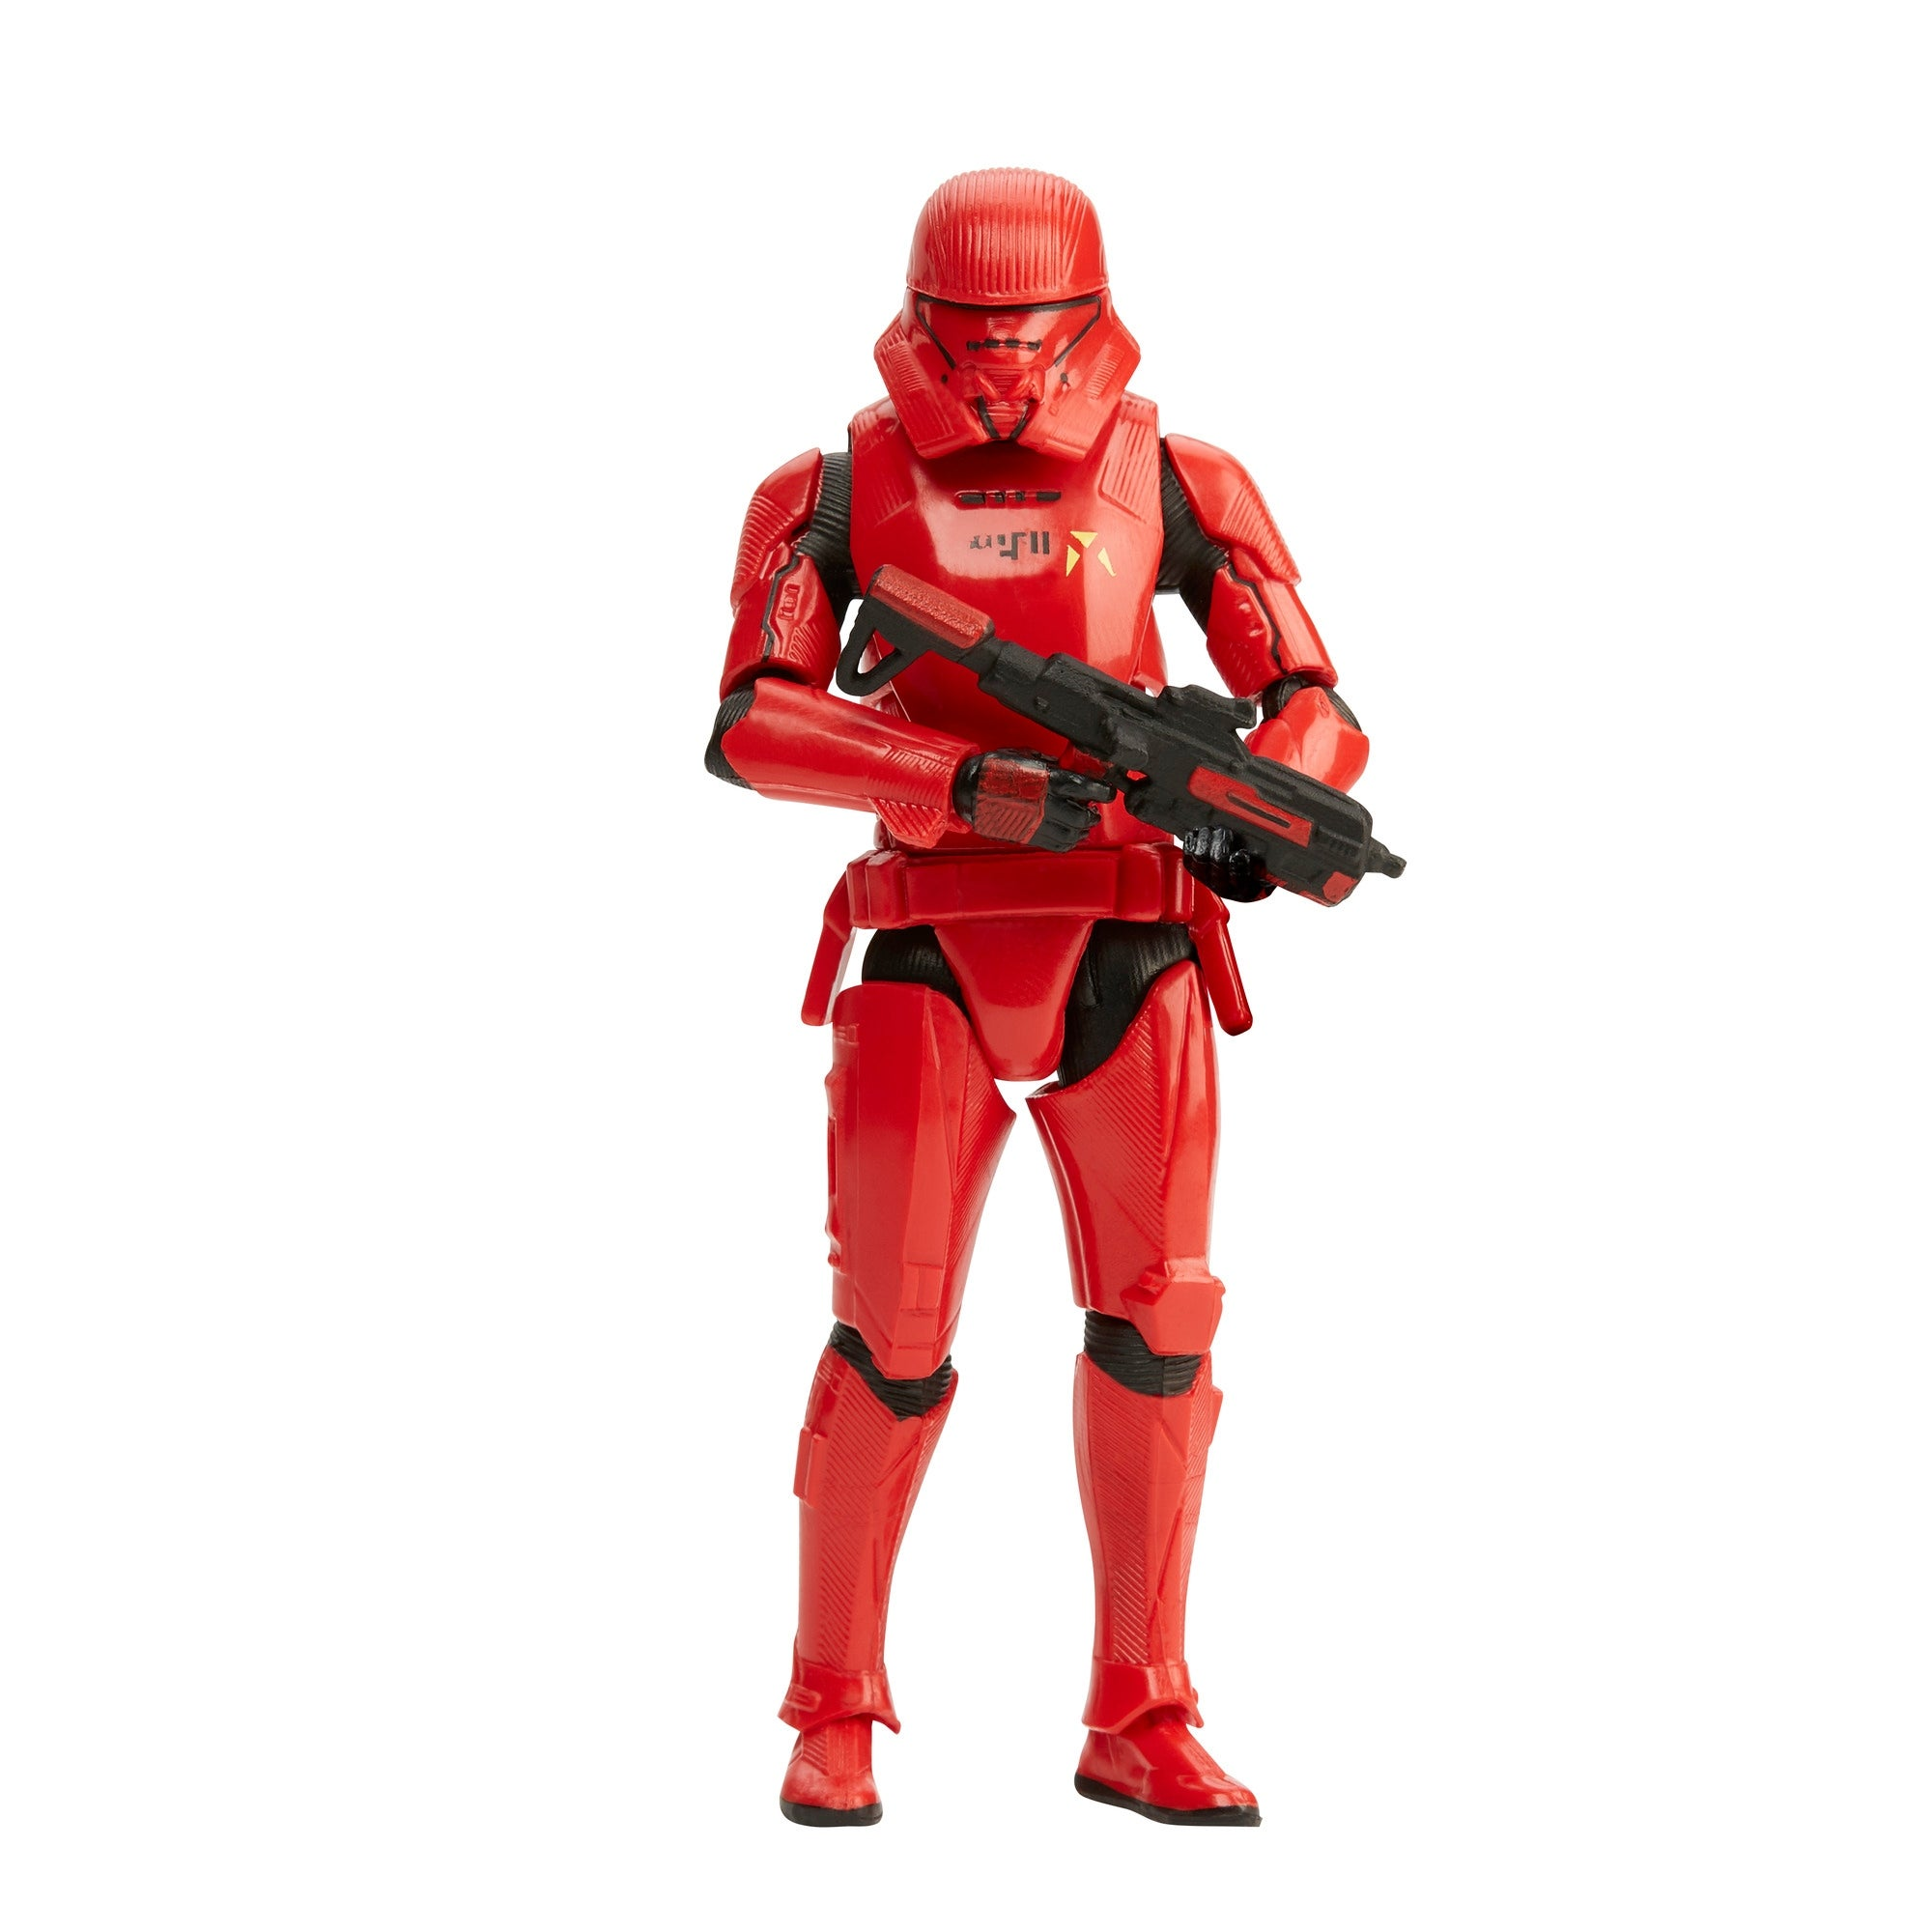 Shop Star Wars The Vintage Collection Star Wars The Rise Of Skywalker Sith Jet Trooper Toy 3 75 Inch Scale Figure 4 And Up Free Shipping On Orders Over 45 Overstock 30318624